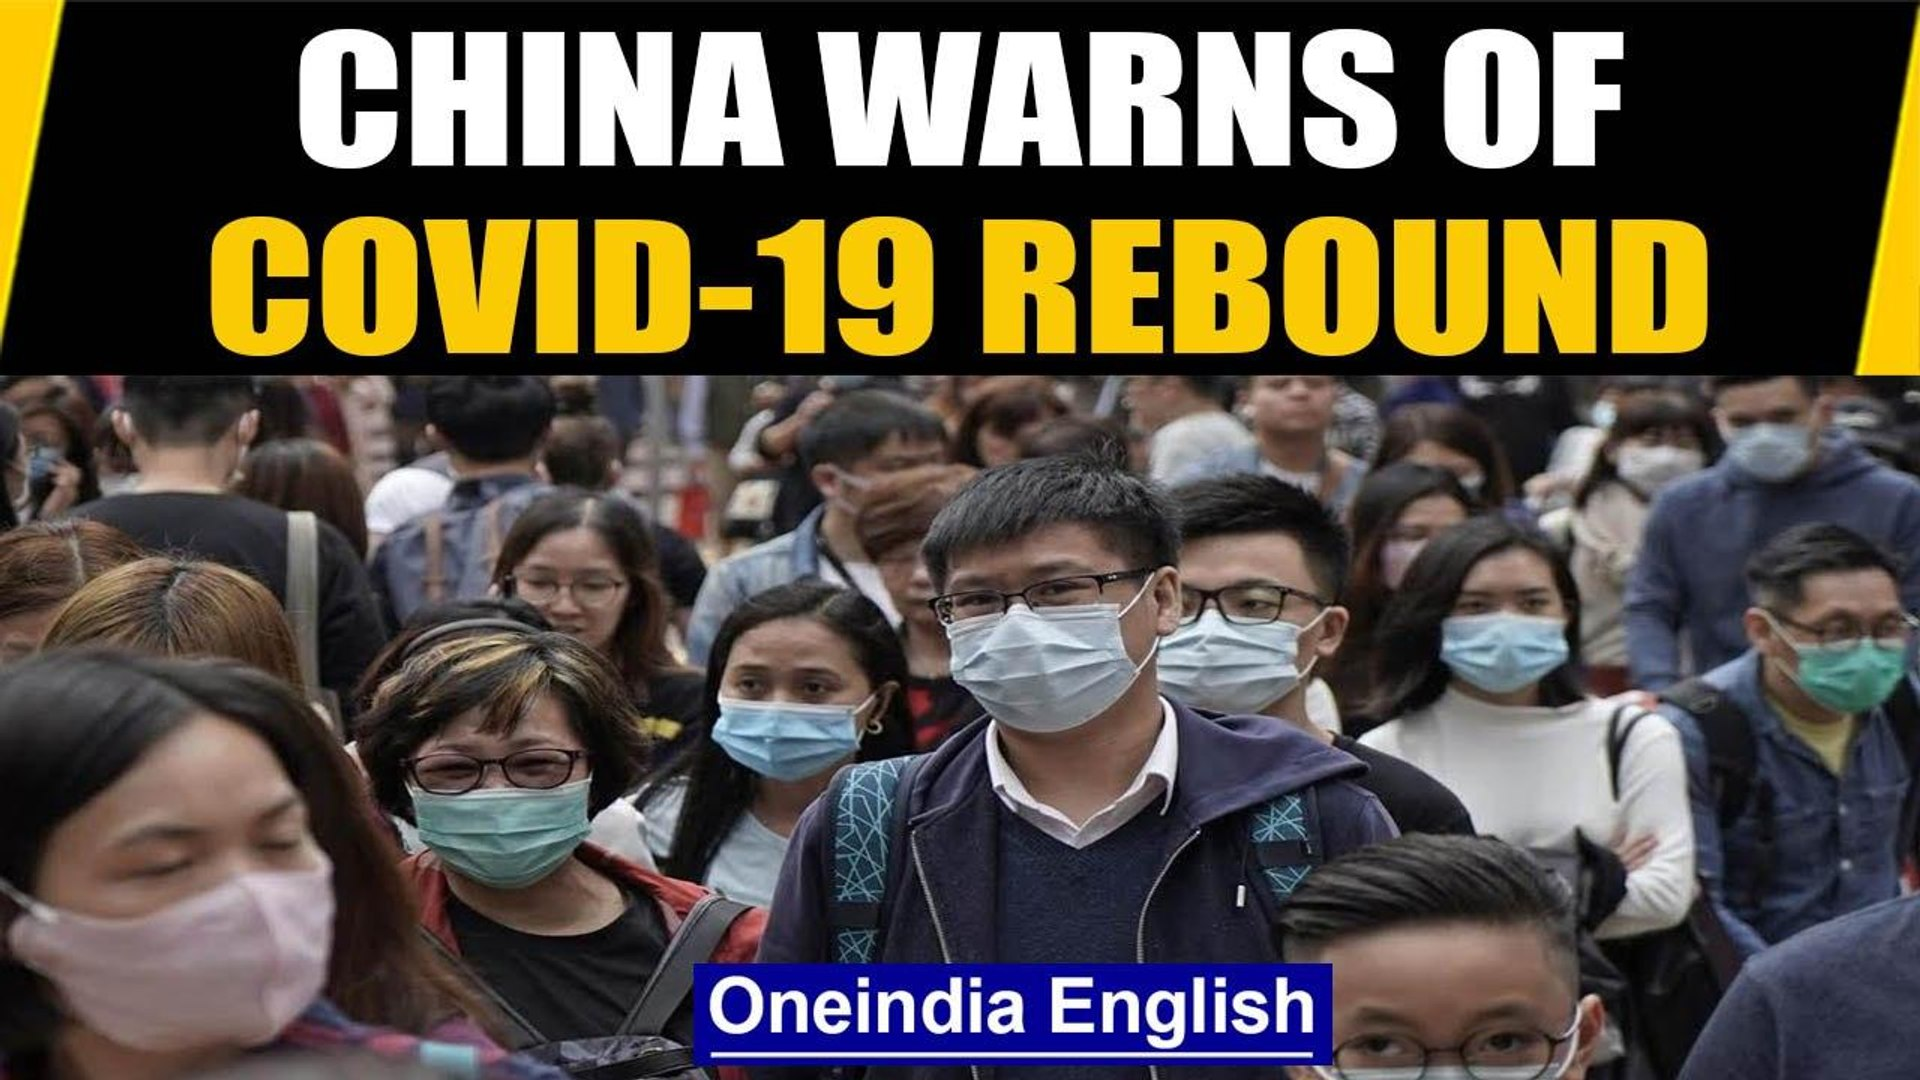 No complacency: Chinese official warns of a rebound of the virus | Oneindia News